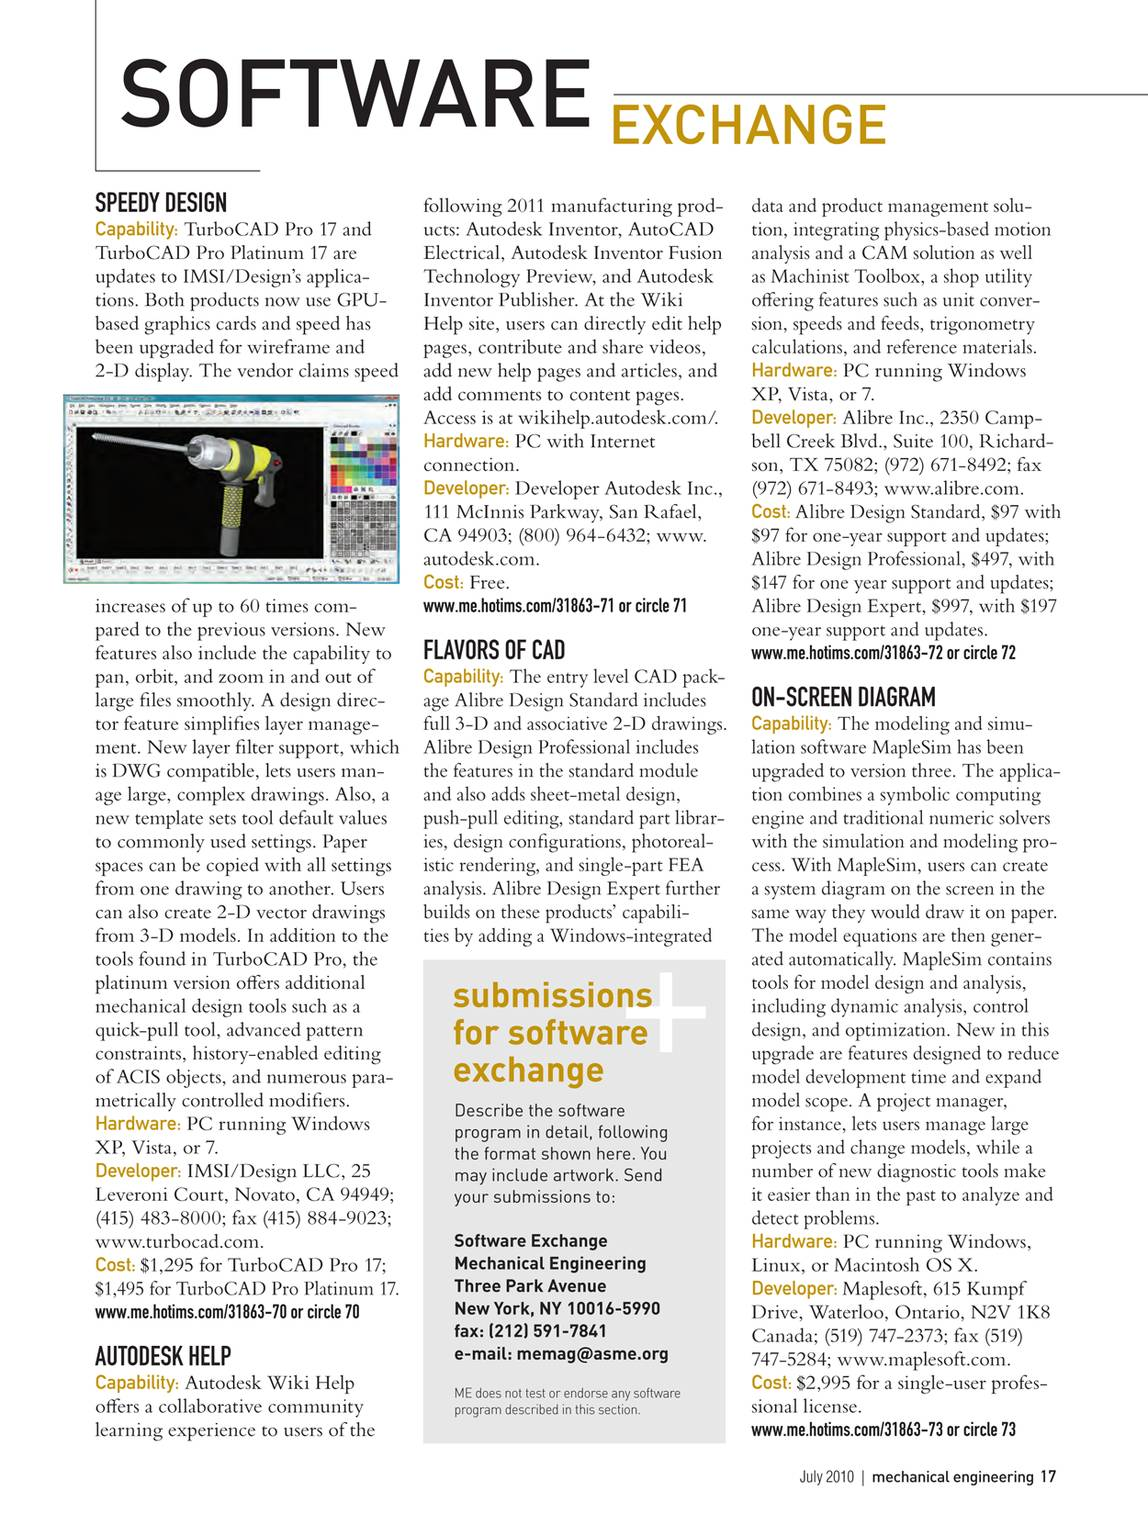 Mechanical Engineering July 2010 Page 17